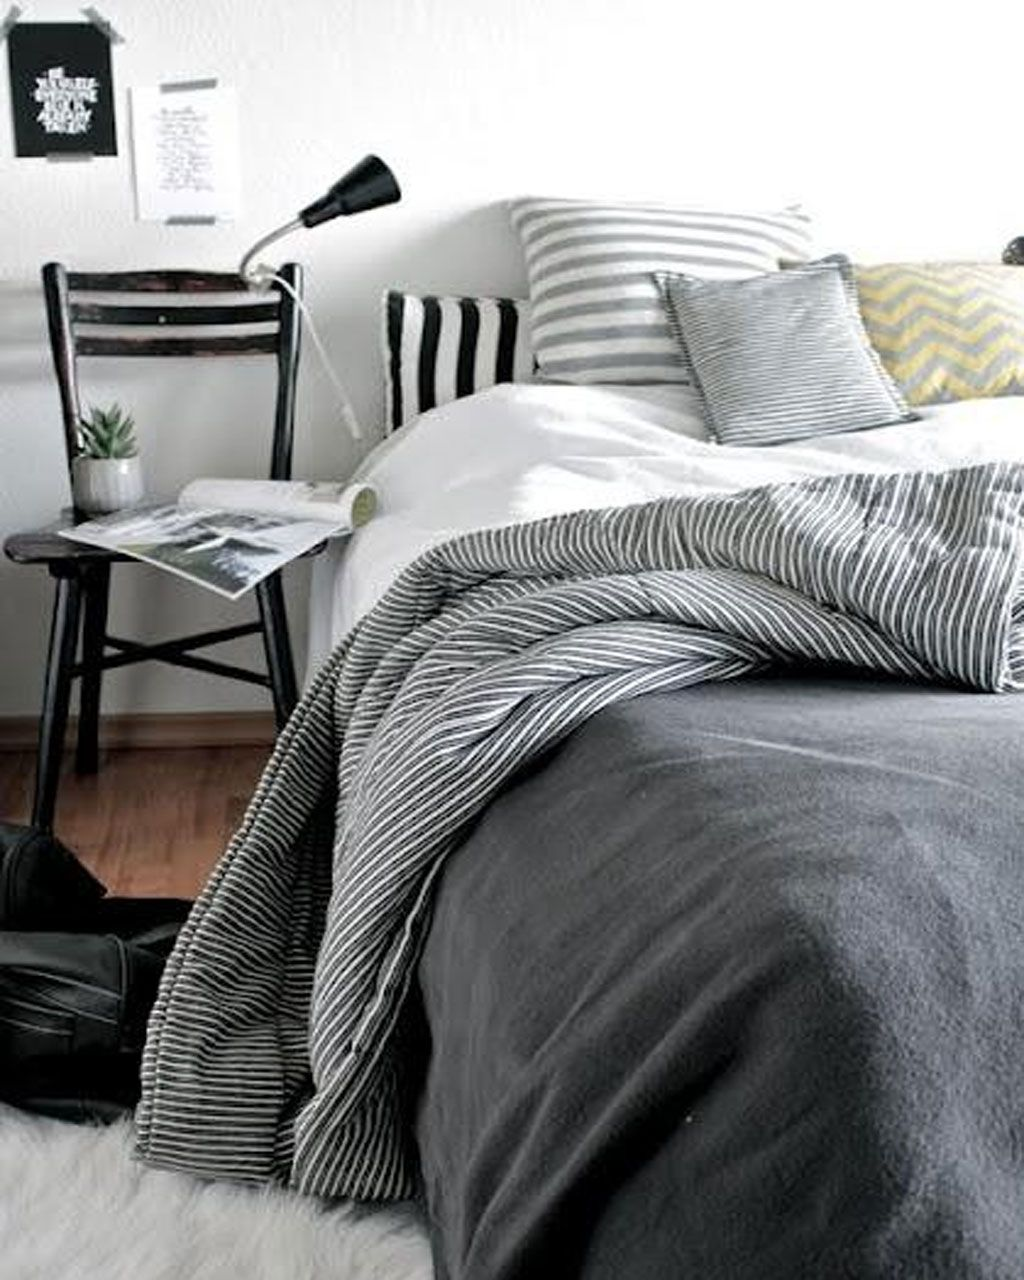 redesign your bedroom with stylish scandinavian style  - redesign your bedroom with stylish scandinavian style contemporary beddingset ideas also black metal bedside